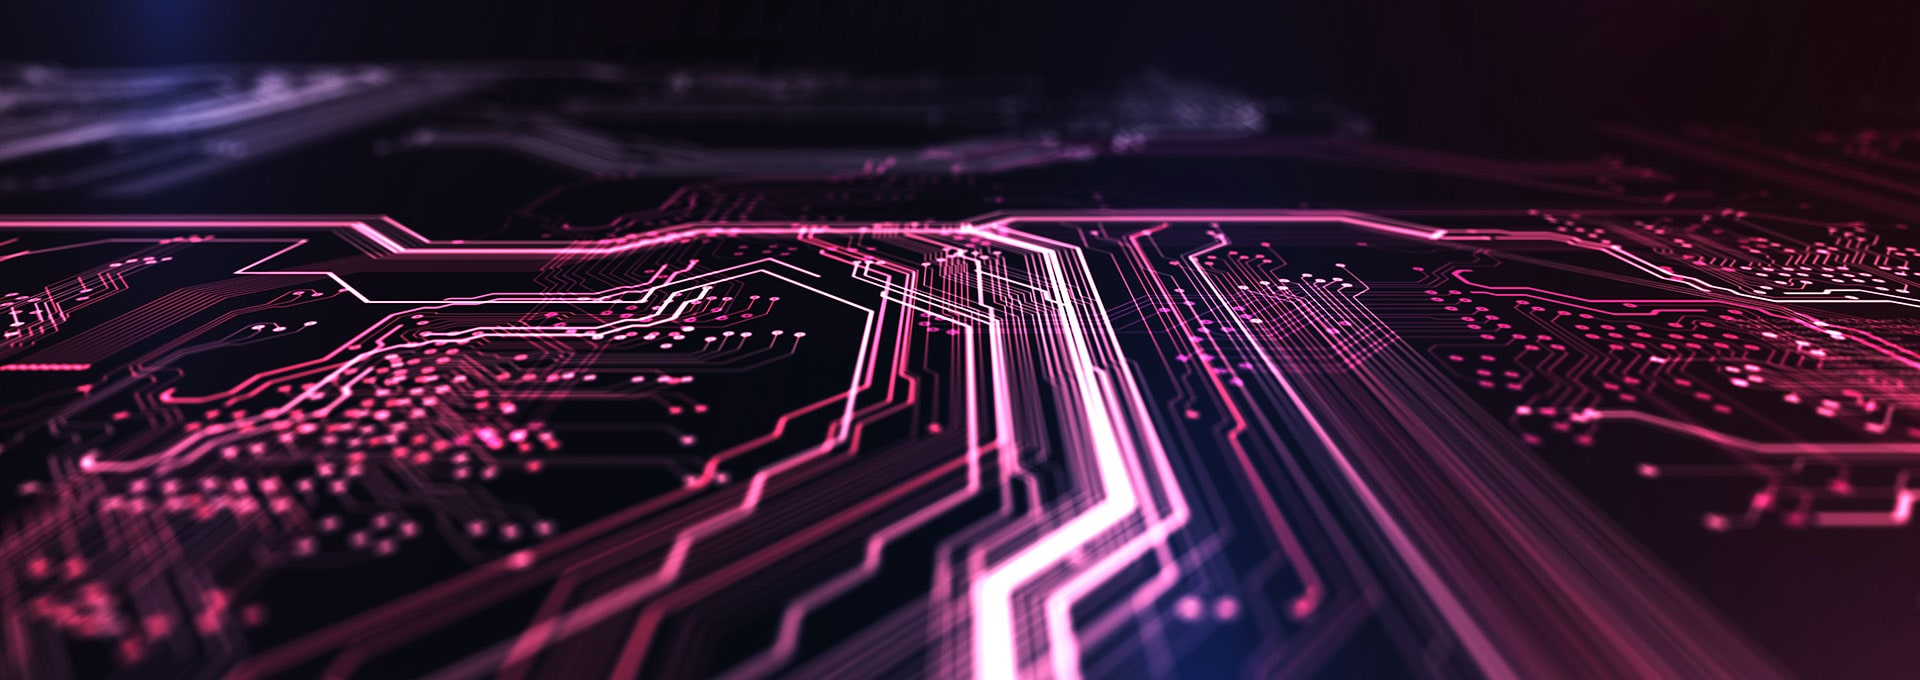 Dark red and blue technology background with circuit board, code, and a strong white line down the middle. A 3D illustration.